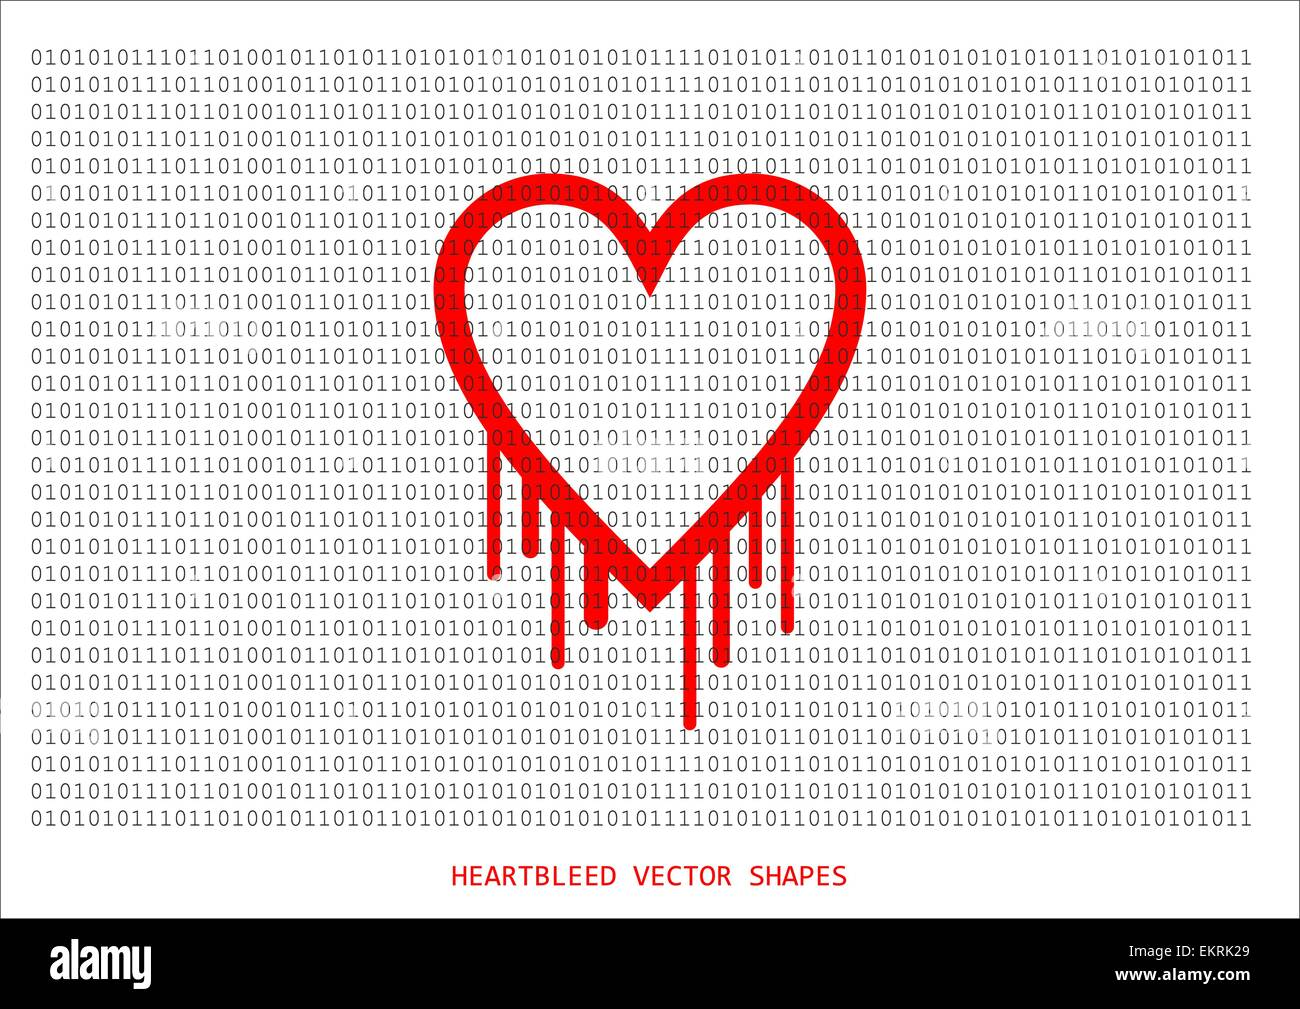 Bleeding heart symbol of love in grunge style stock photo pictogram symbol heartbleed openssl bug vector shape bleeding heart with wall of text in background stock buycottarizona